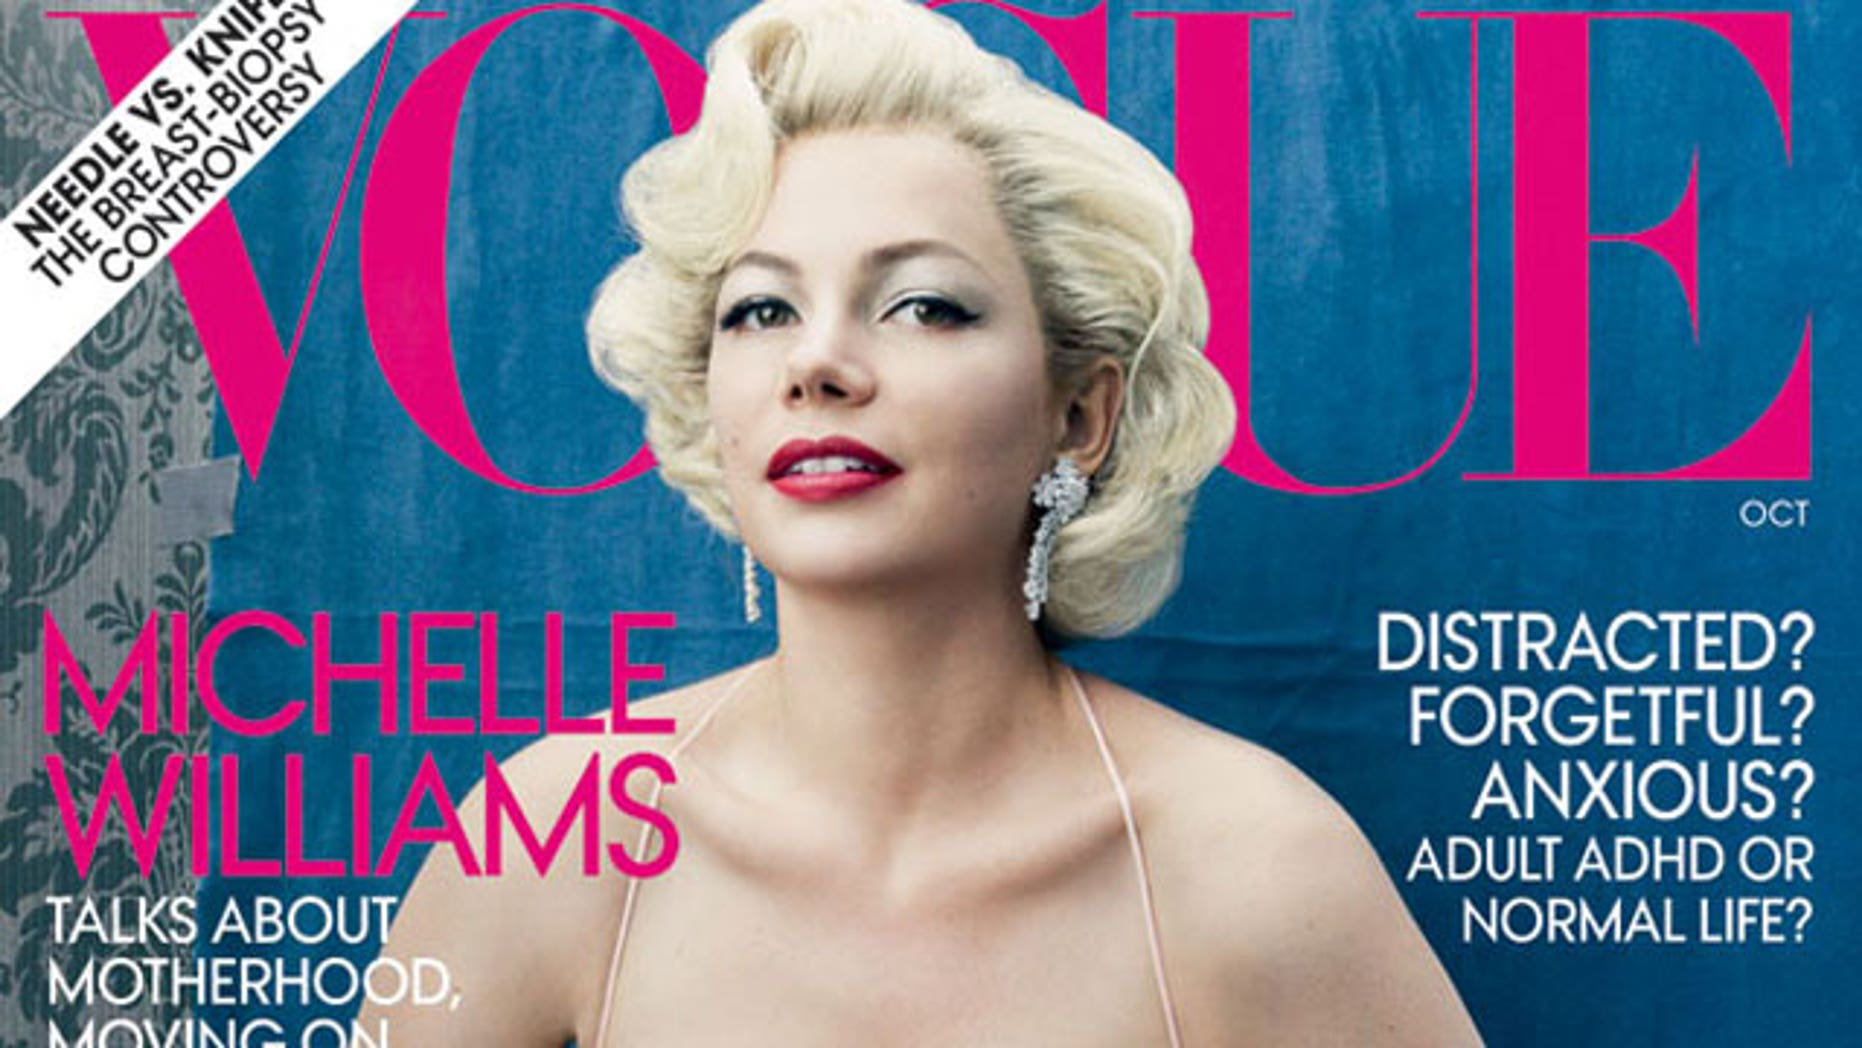 Michelle Williams on the October cover of Vogue magazine. (Vogue)